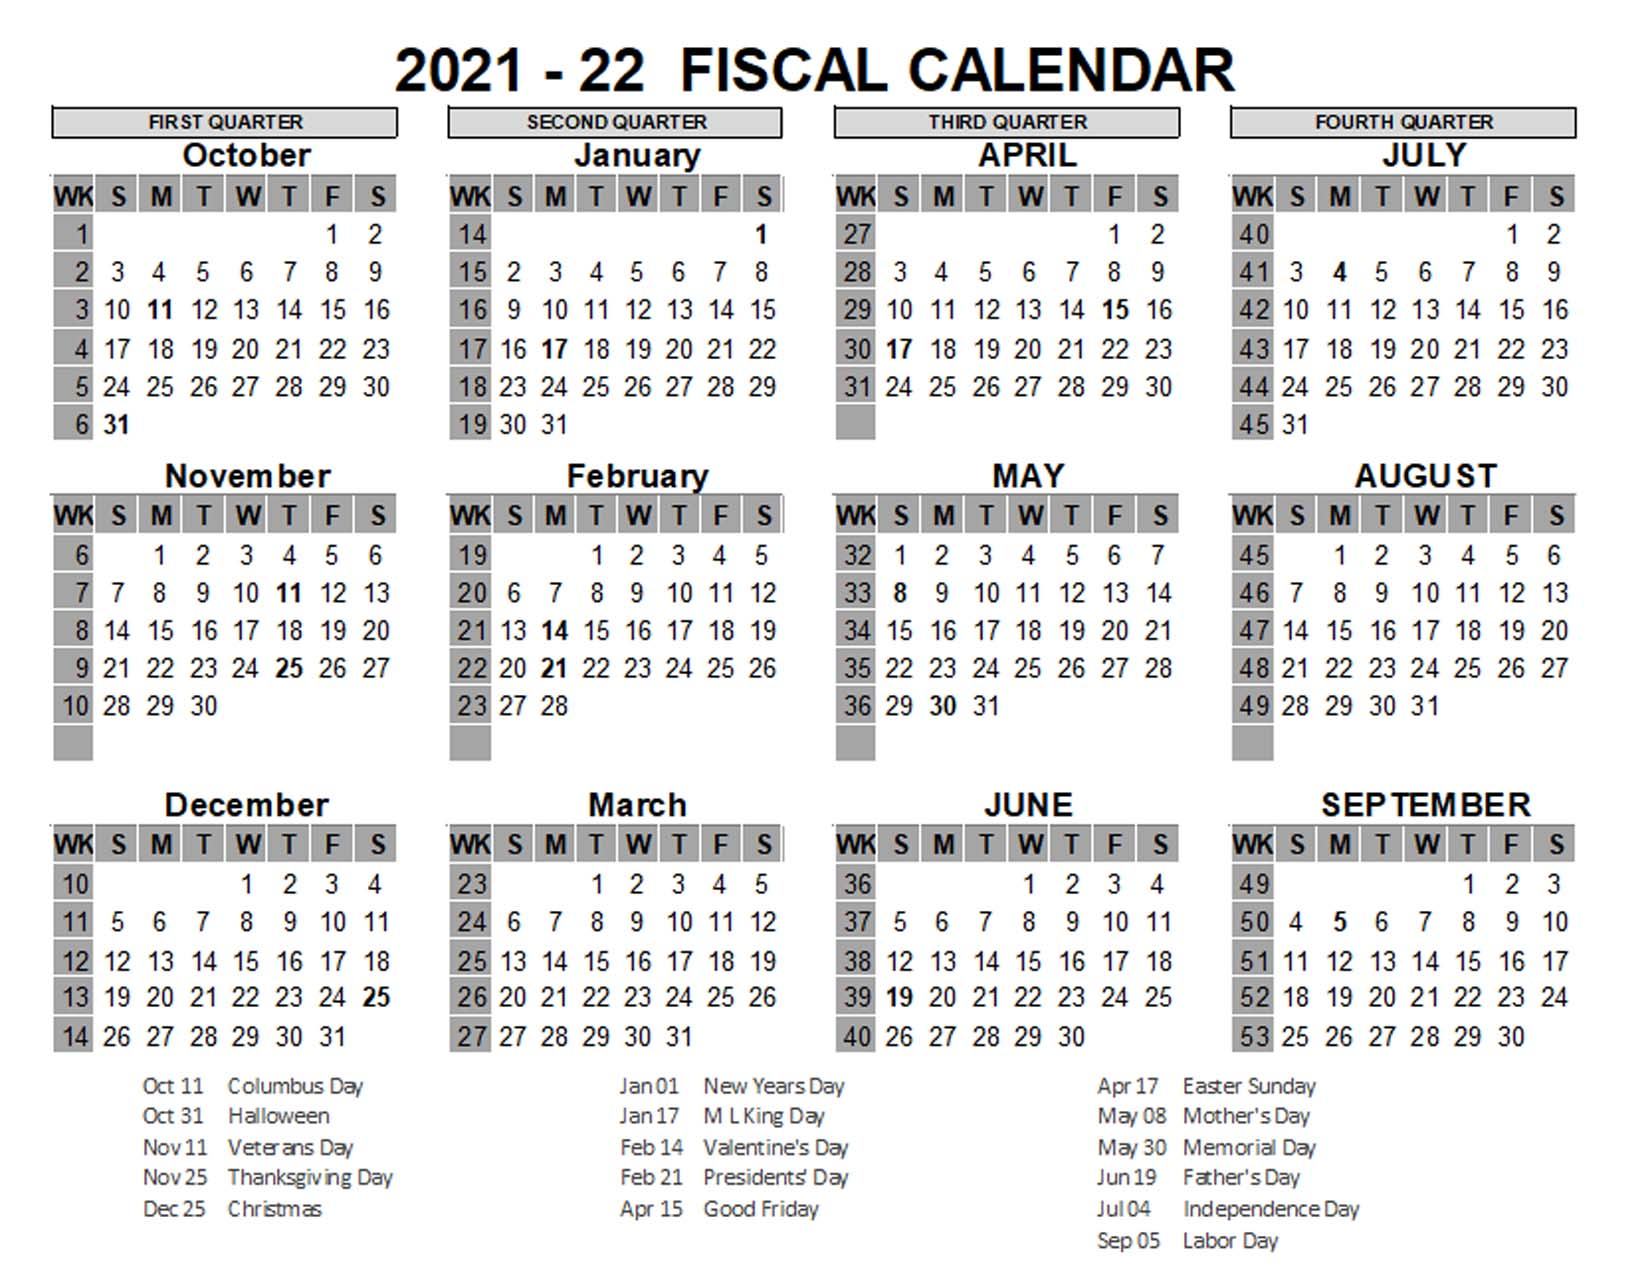 2021 US Fiscal Year Template - Free Printable Templates